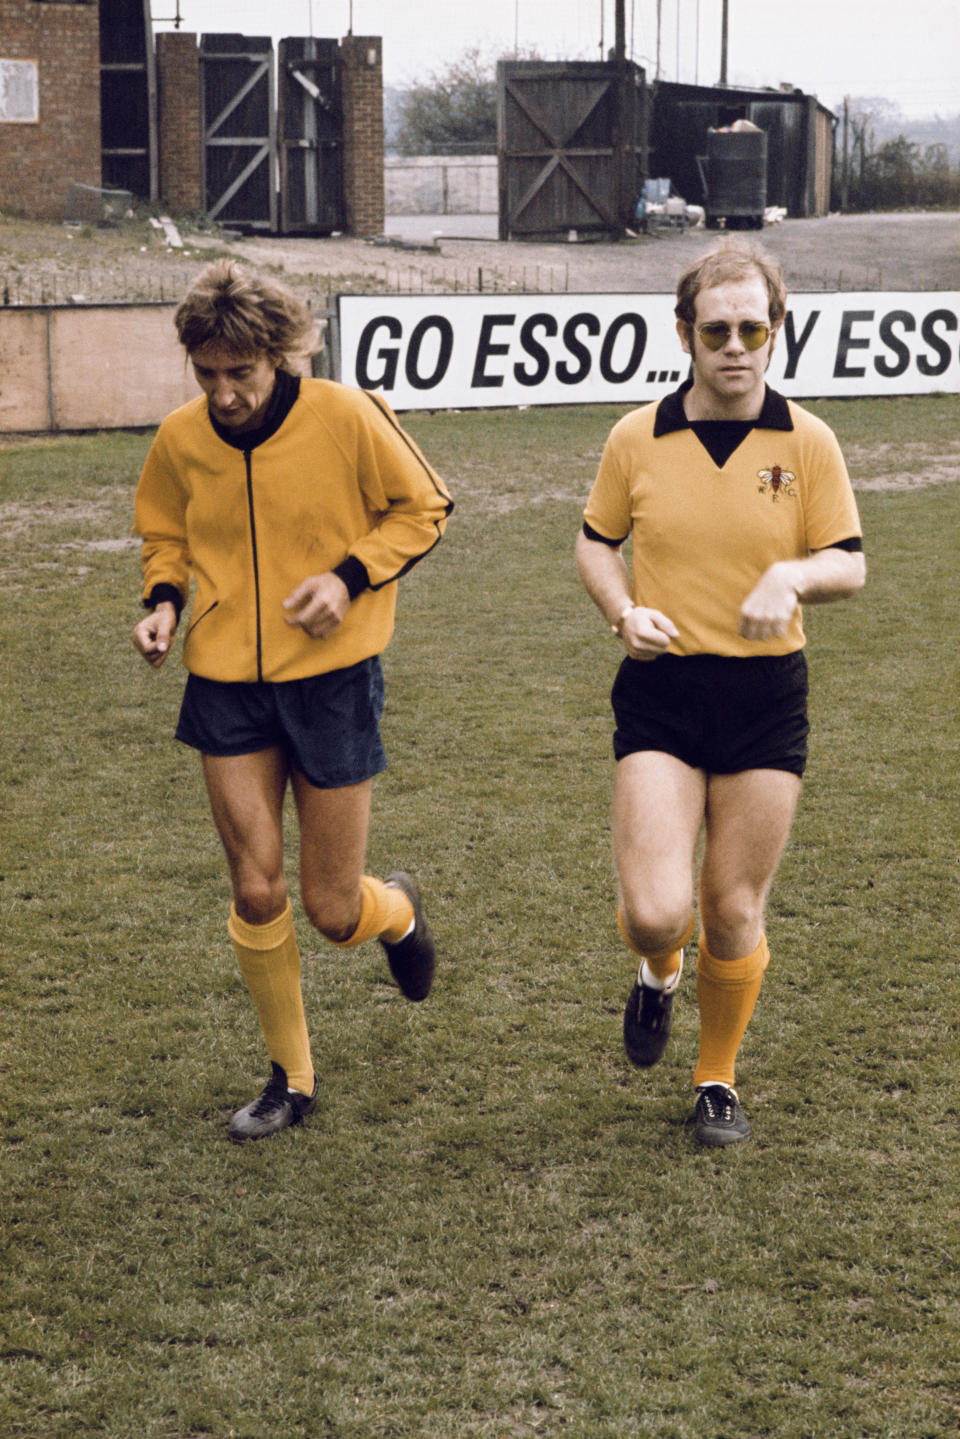 British singers Elton John and Rod Stewart training at Watford Football Club's Vicarage Road ground in Watford, Hertfordshire, November 1973. (Photo by Michael Putland/Getty Images)